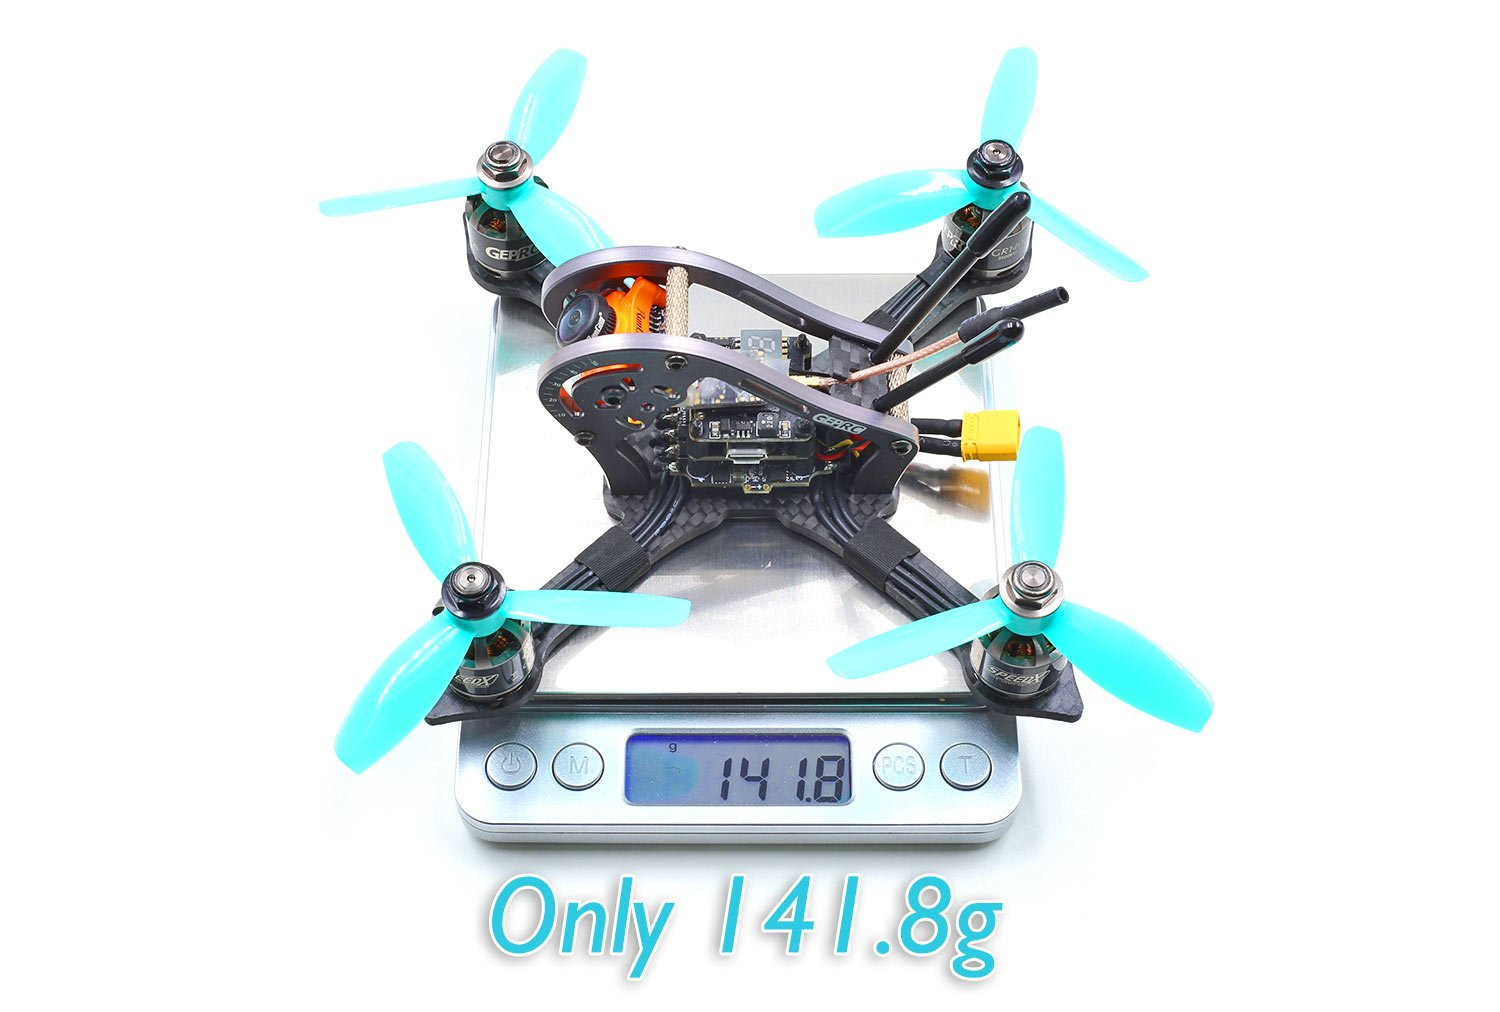 hight resolution of  1 x runcam micro swift 1 x hglrc xjb f328 tx20 pbf3 evo betaflight f3 esc 28a 2 4s blheli s bb2 4 in 1 xjb tx20 mini fpv transmitter